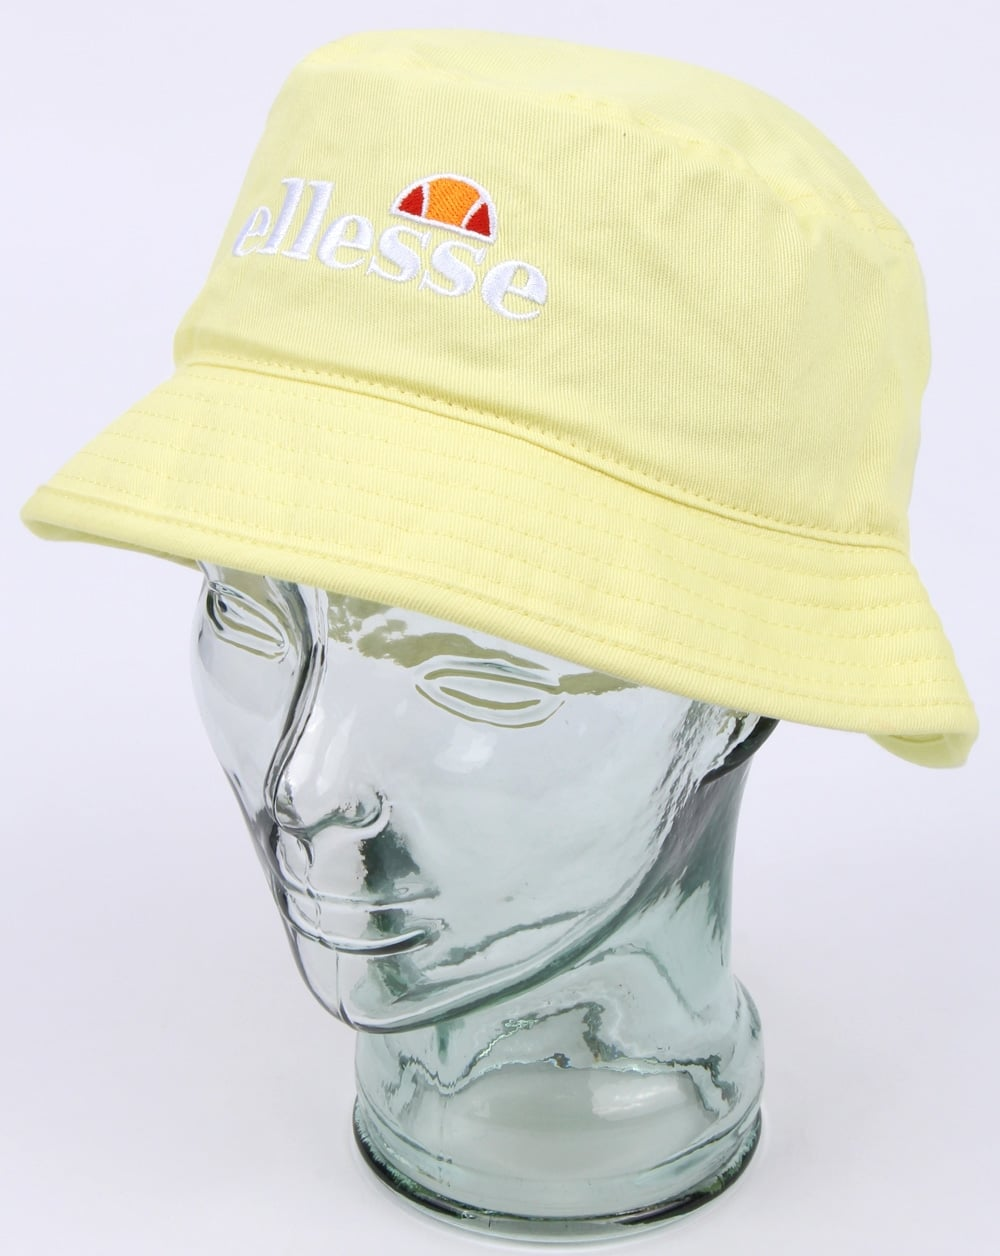 Ellesse Ellesse Binno Bucket Hat Tender Yellow 5e76455f4a9